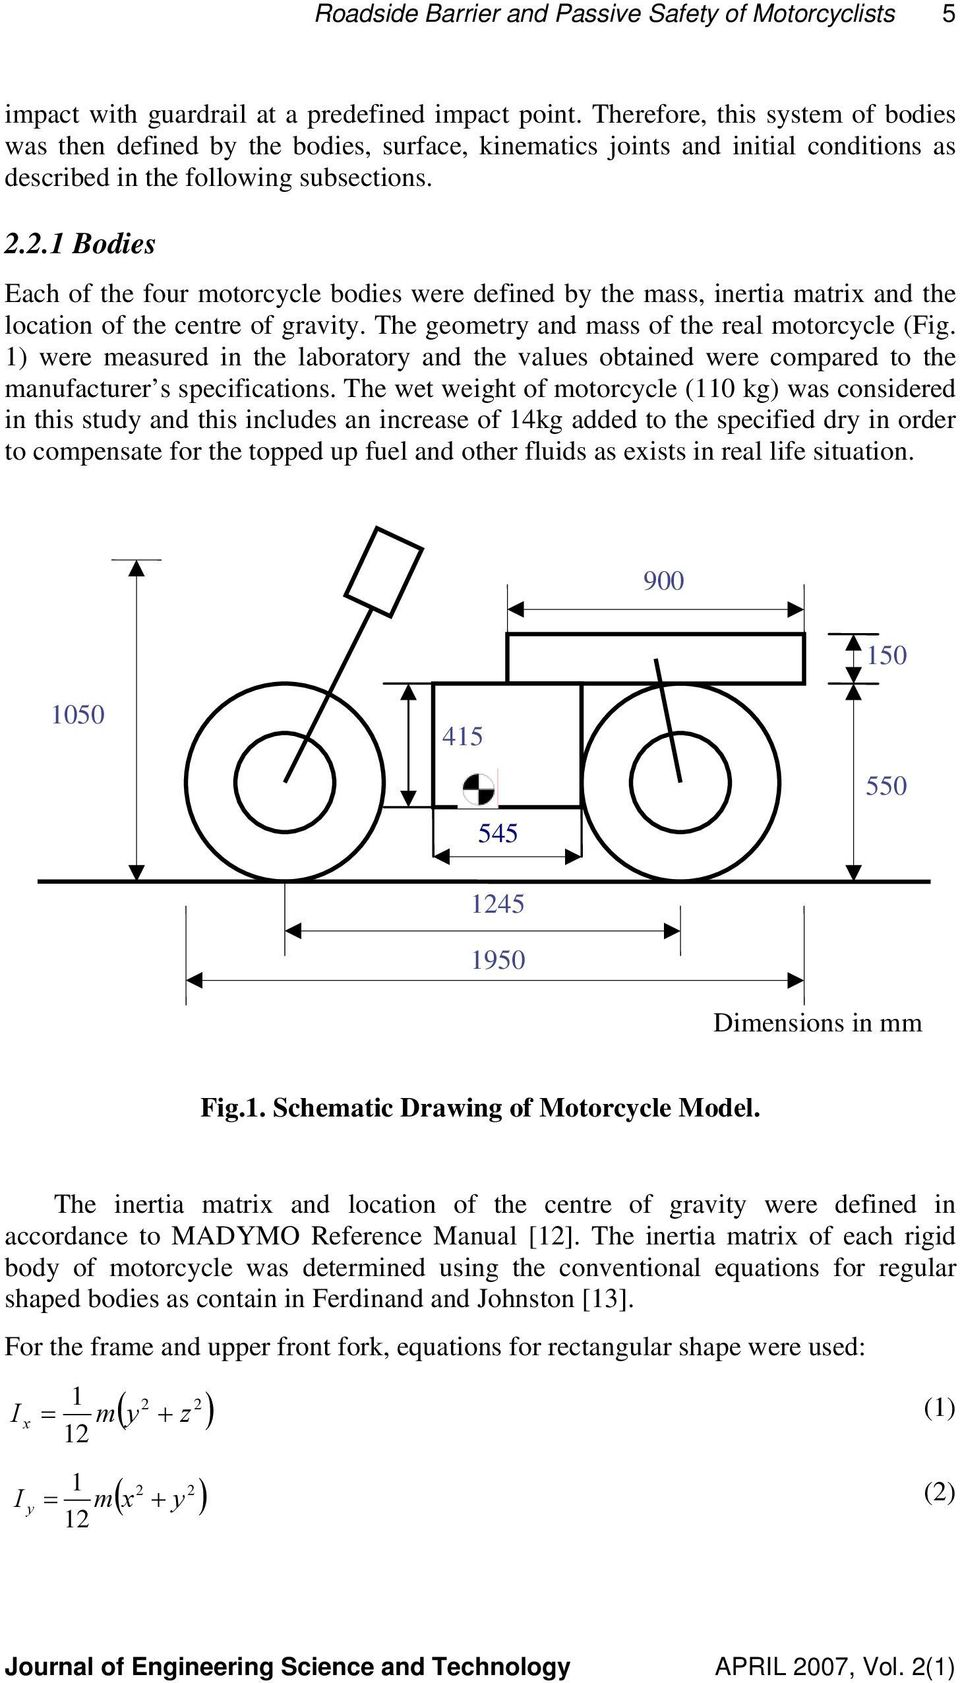 2.1 Bodies Each of the four motorcycle bodies were defined by the mass, inertia matrix and the location of the centre of gravity. The geometry and mass of the real motorcycle (Fig.